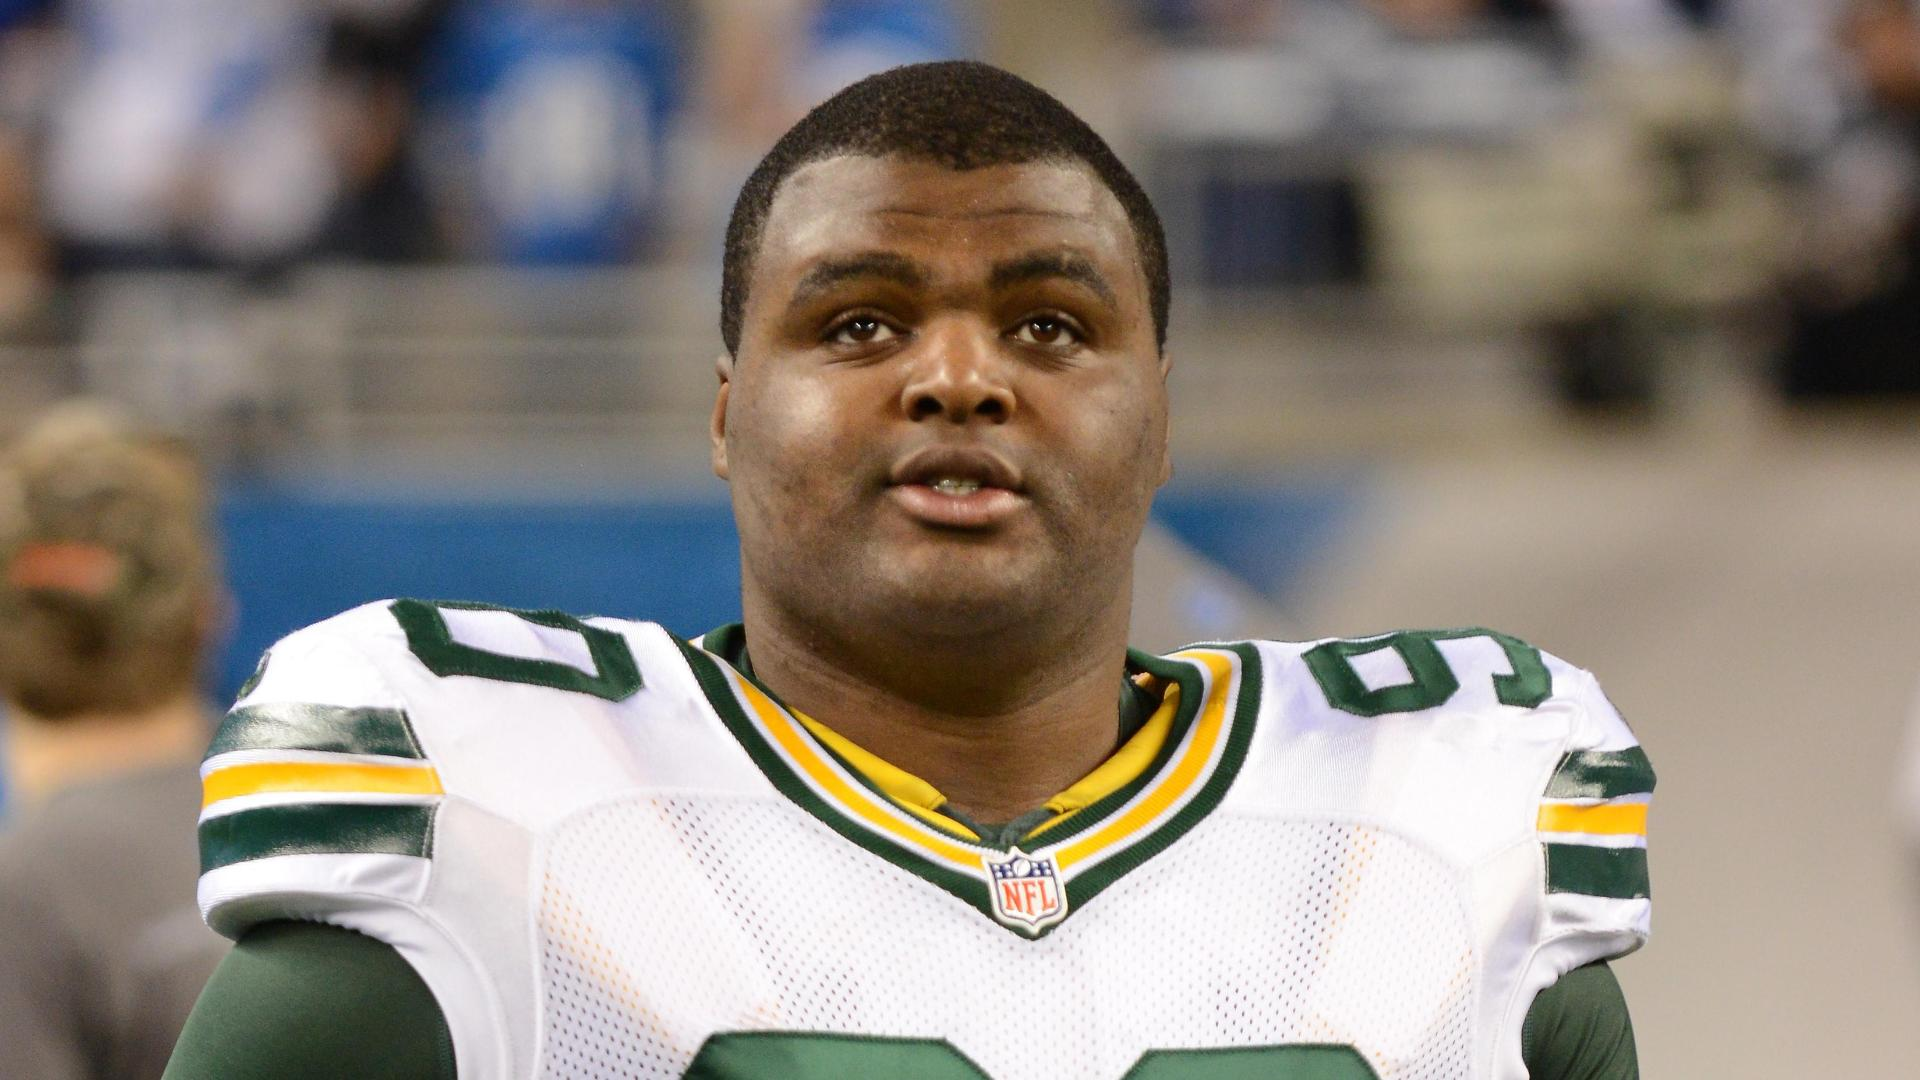 http://a.espncdn.com/media/motion/2014/0823/dm_140823_nfl_raji_out1222/dm_140823_nfl_raji_out1222.jpg